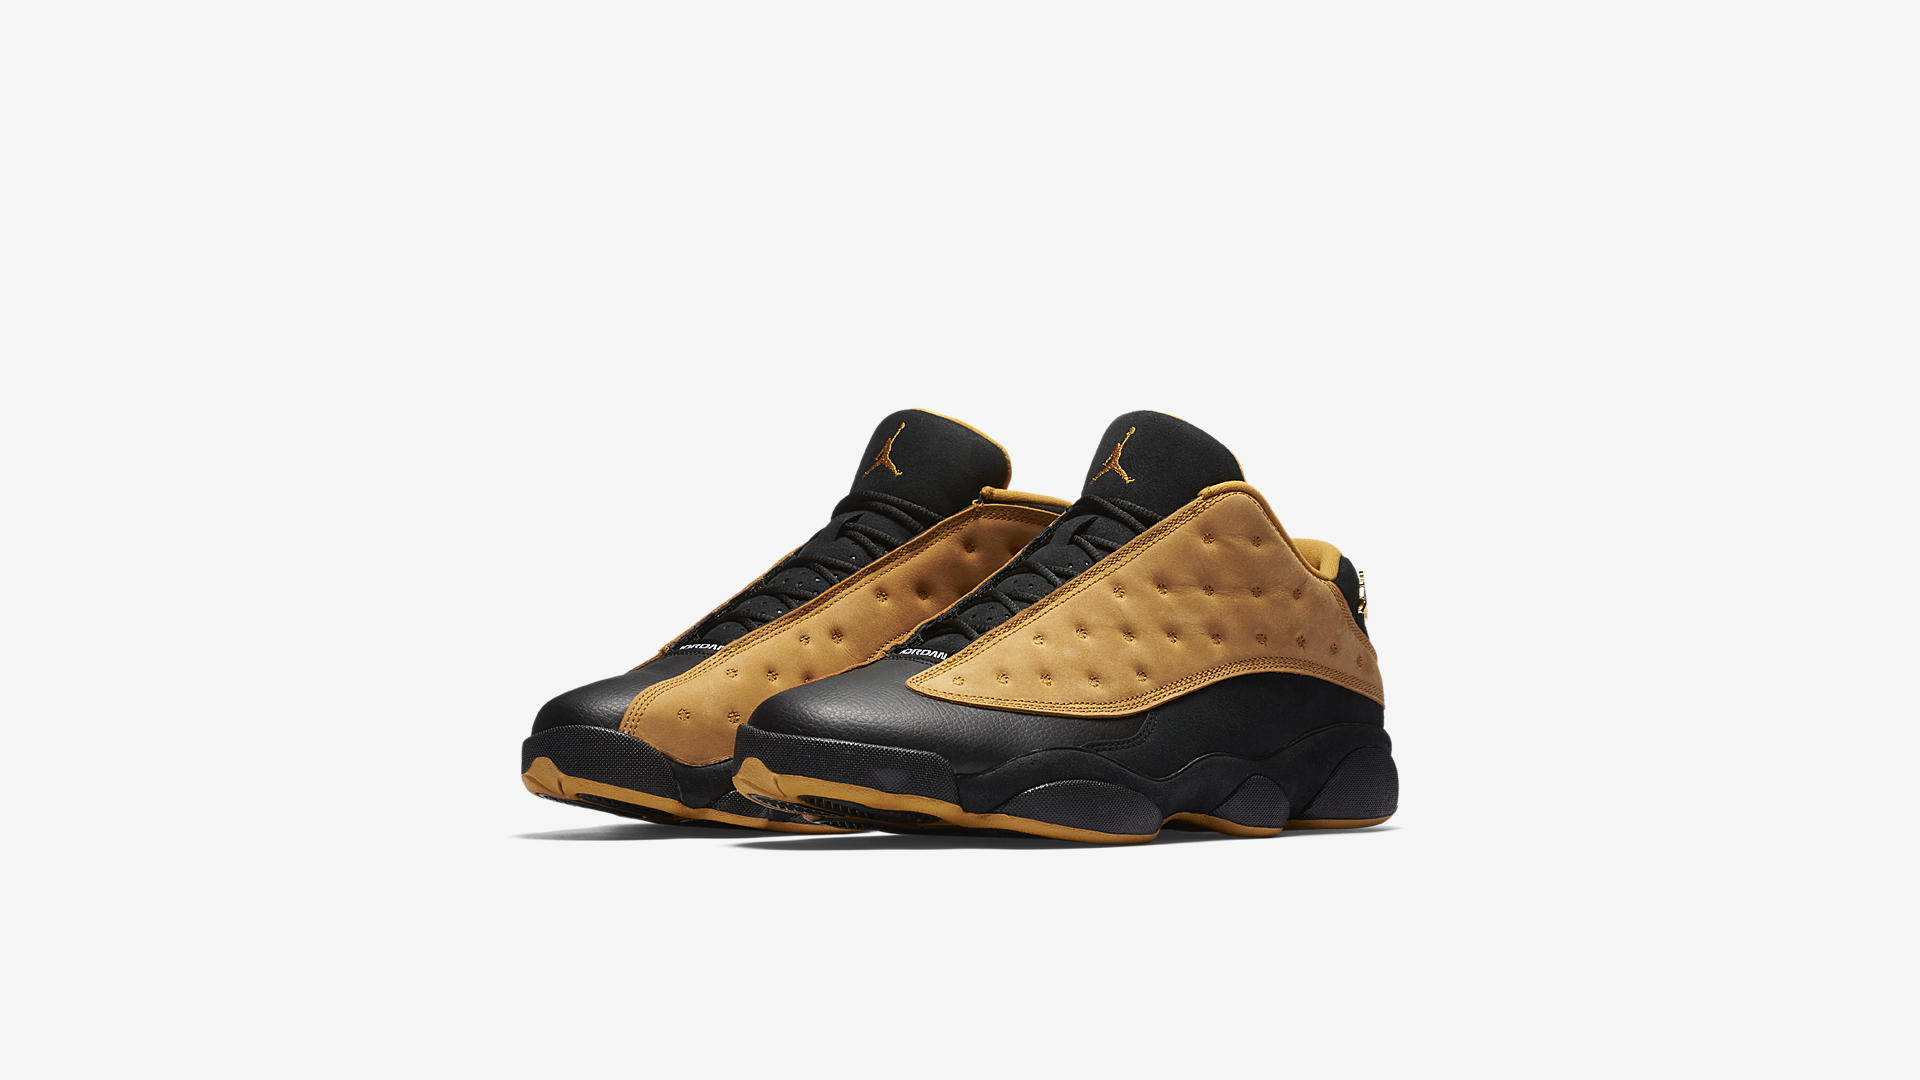 Air Jordan 13 Low Chutney 310810 022 4